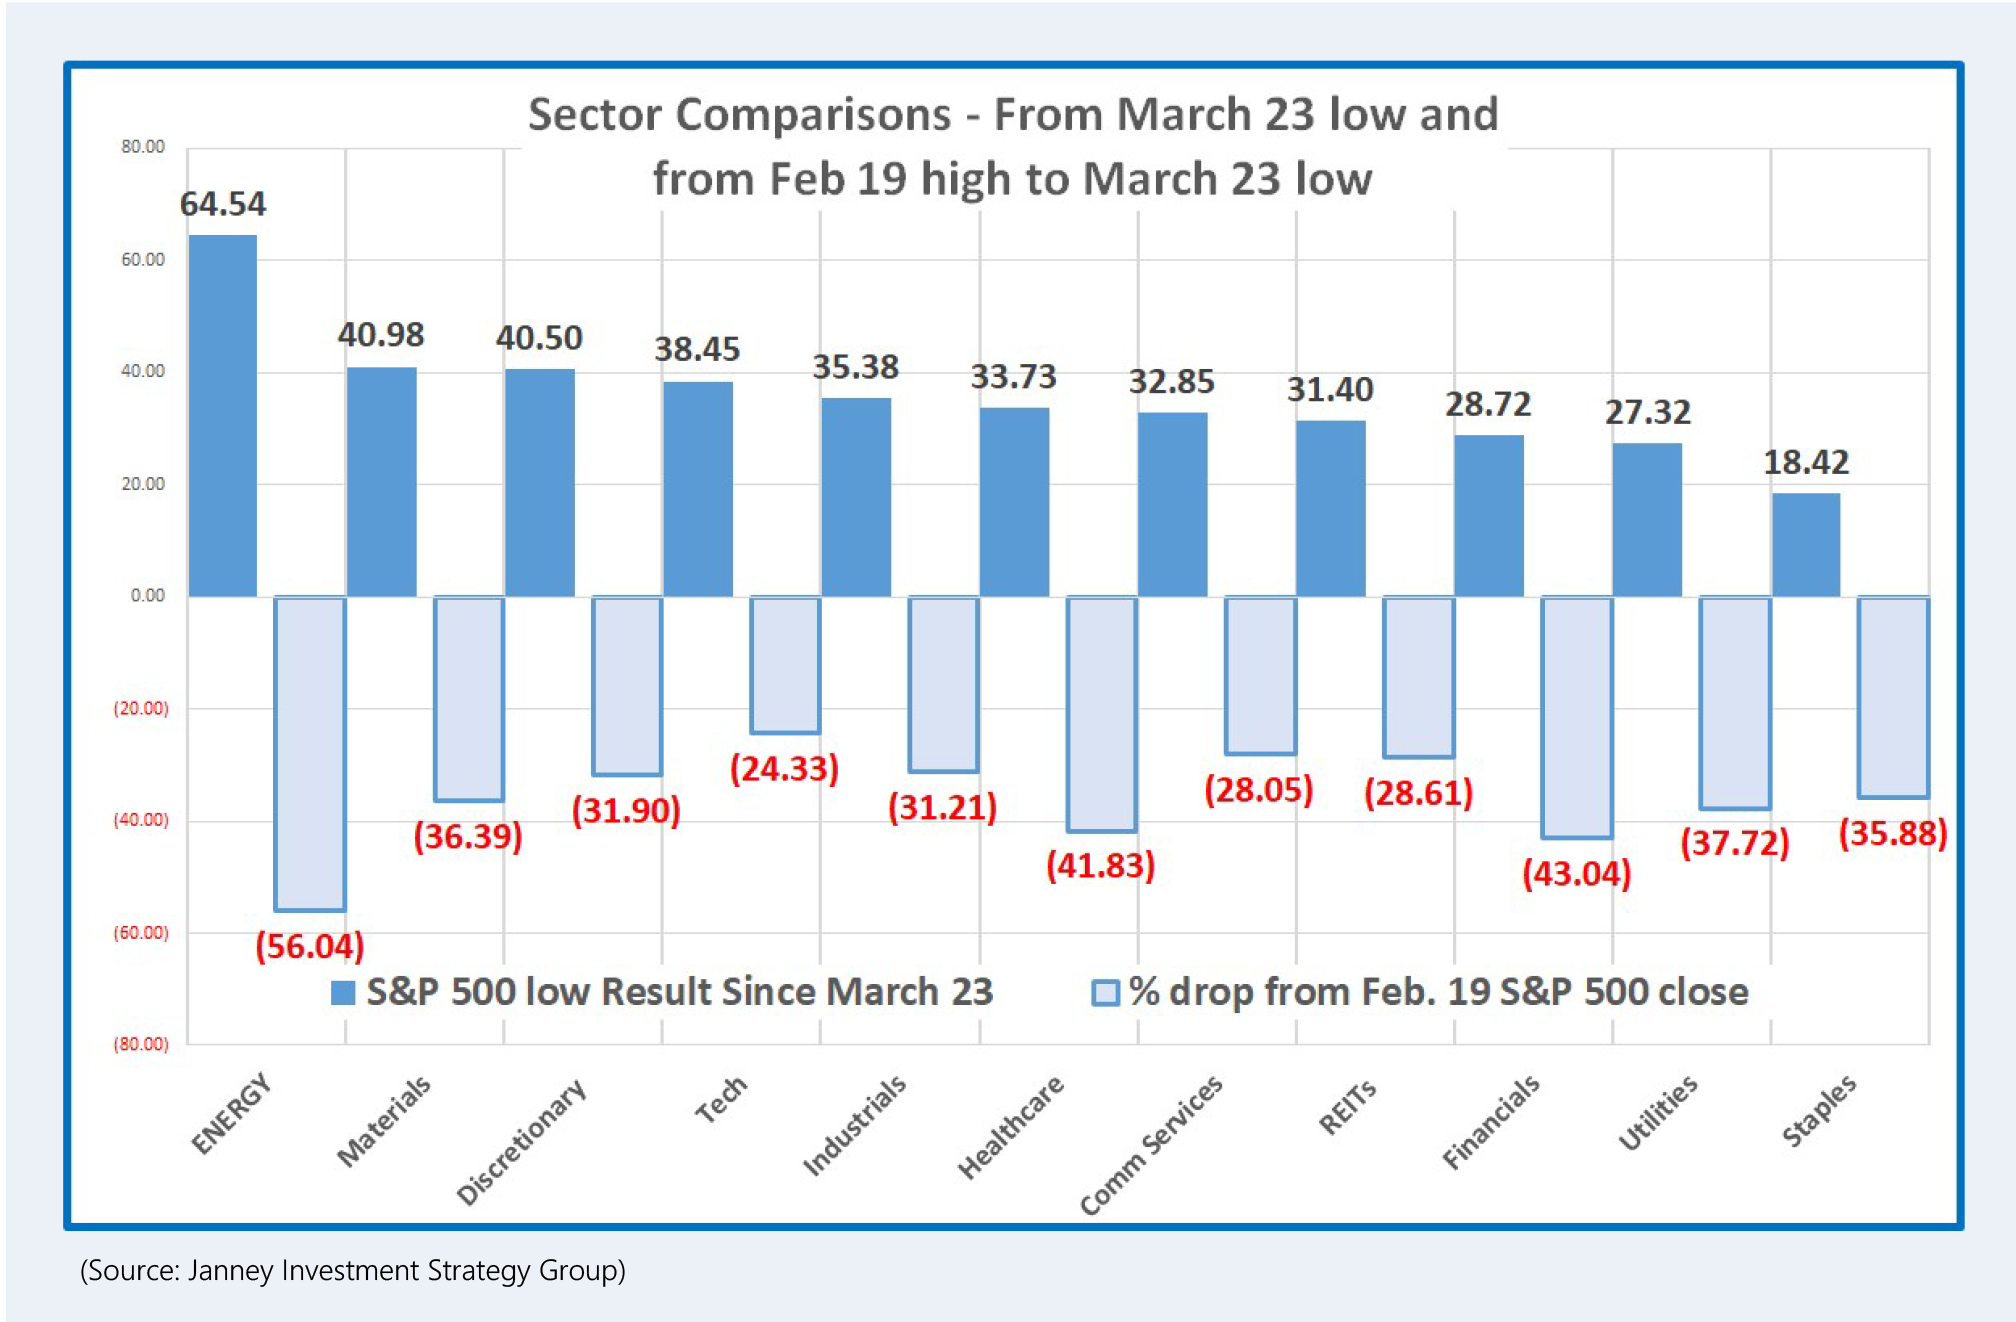 A chart shows sector comparisons, from low to high